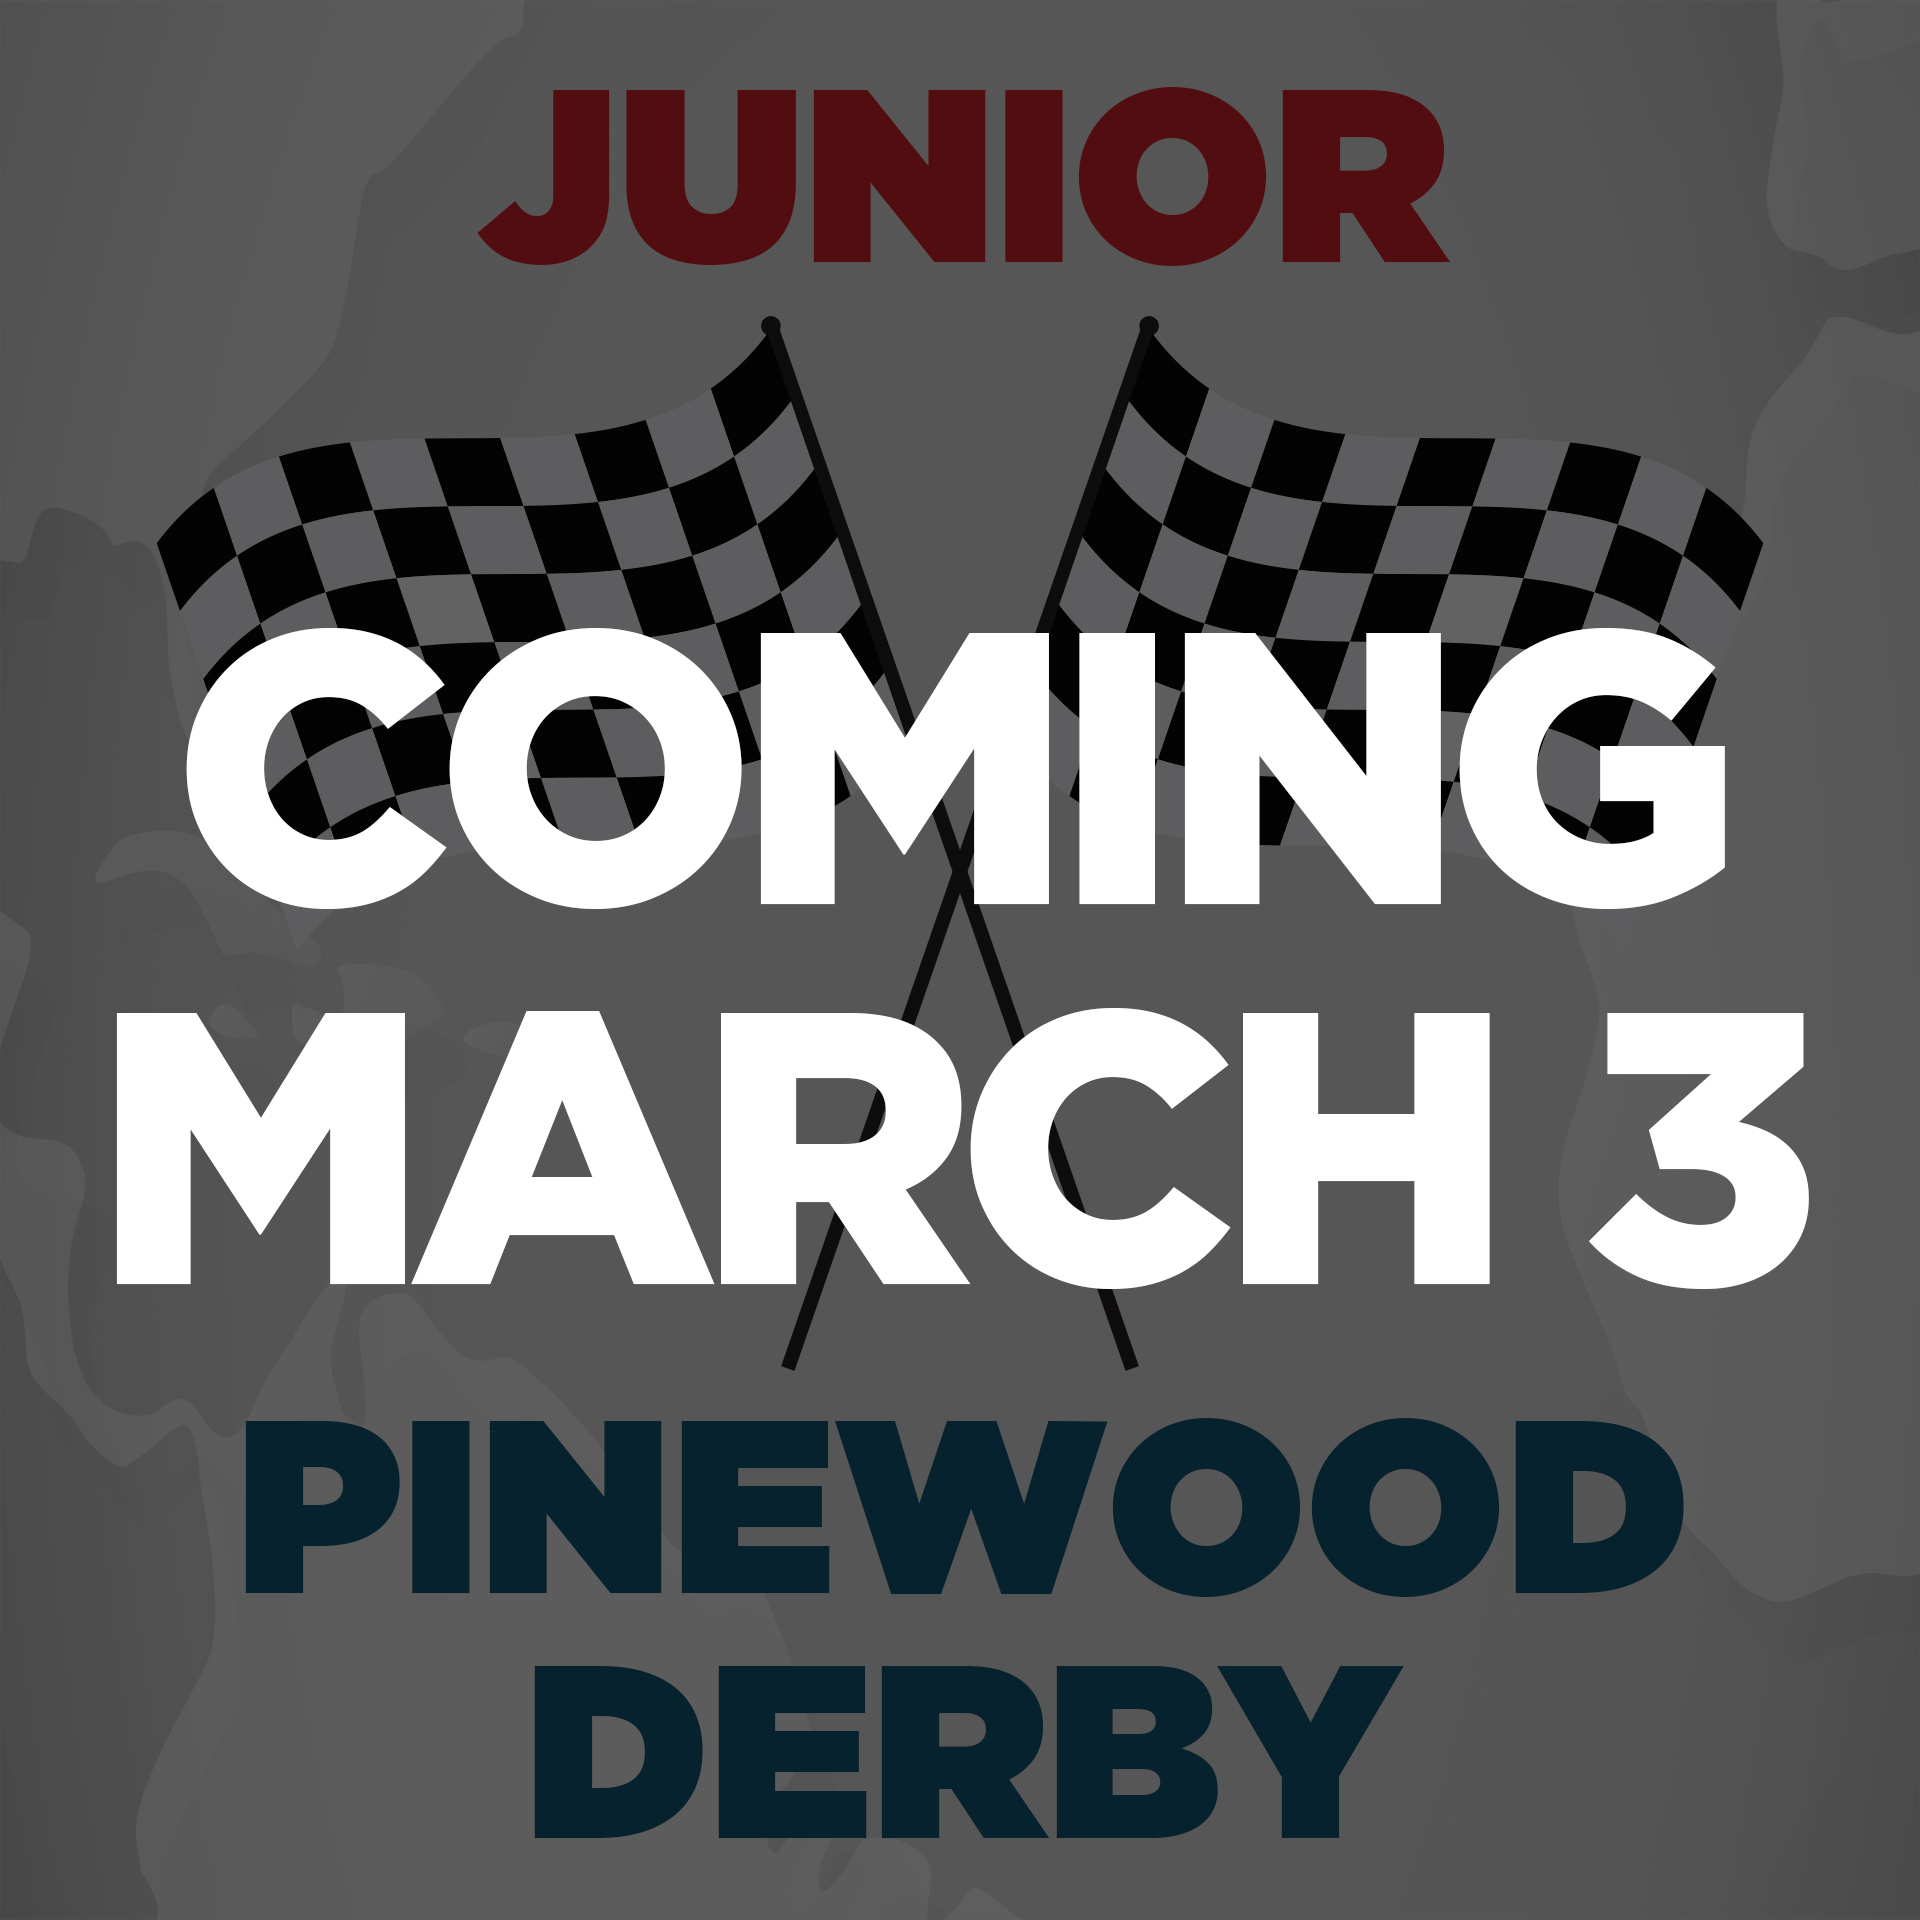 11th-Pinewood-Derby